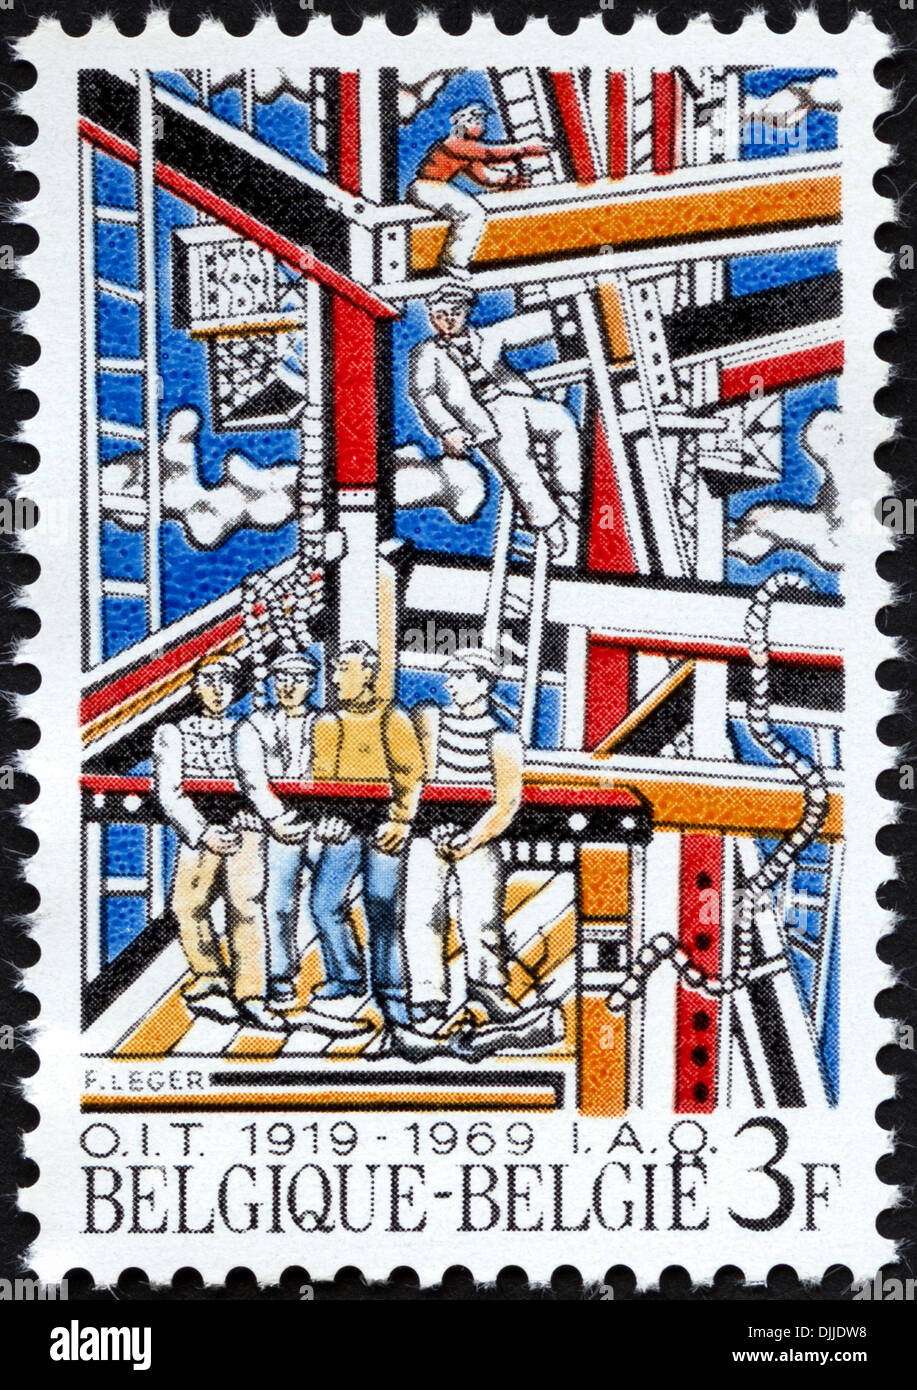 postage stamp Belgium 3F featuring 50th Anniversary of International Labour Organisation 1919 - 1969 issued 1969 - Stock Image